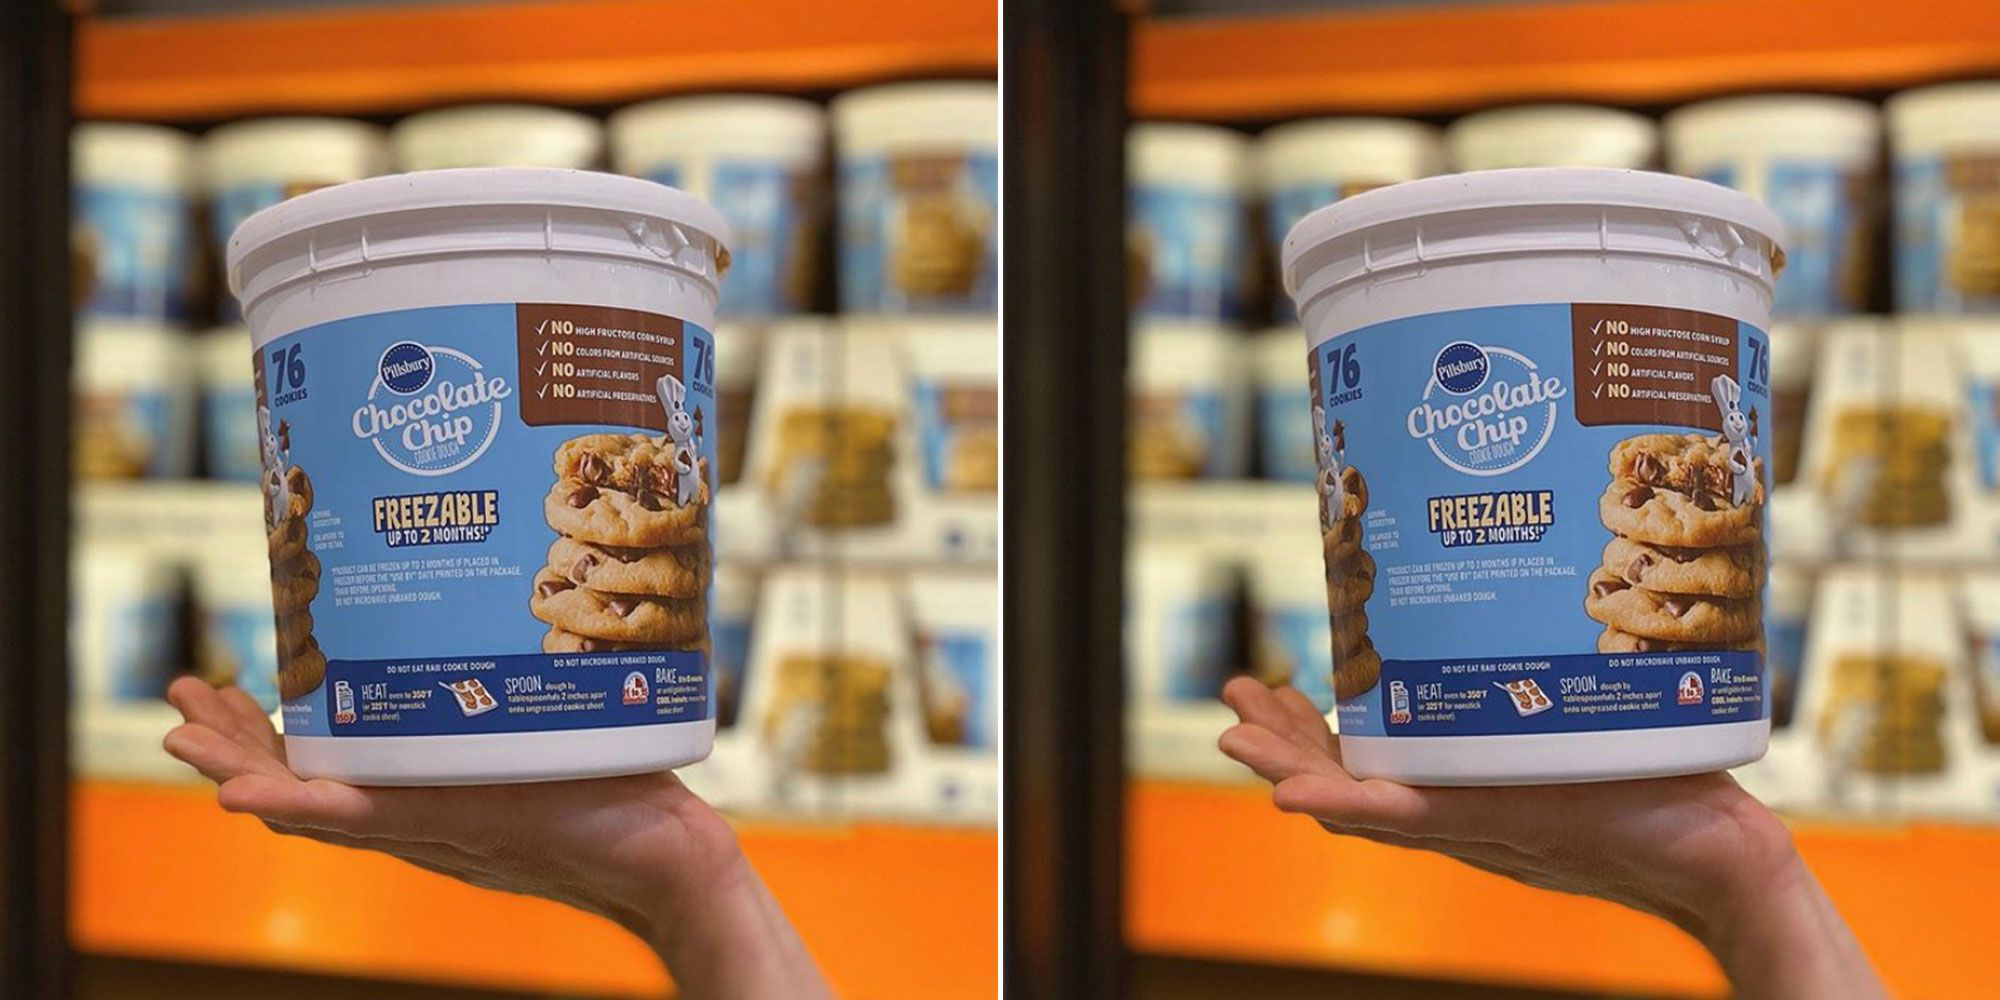 Costco Is Selling 76 Ounce Tubs Of Freezable Chocolate Chip Cookie Dough